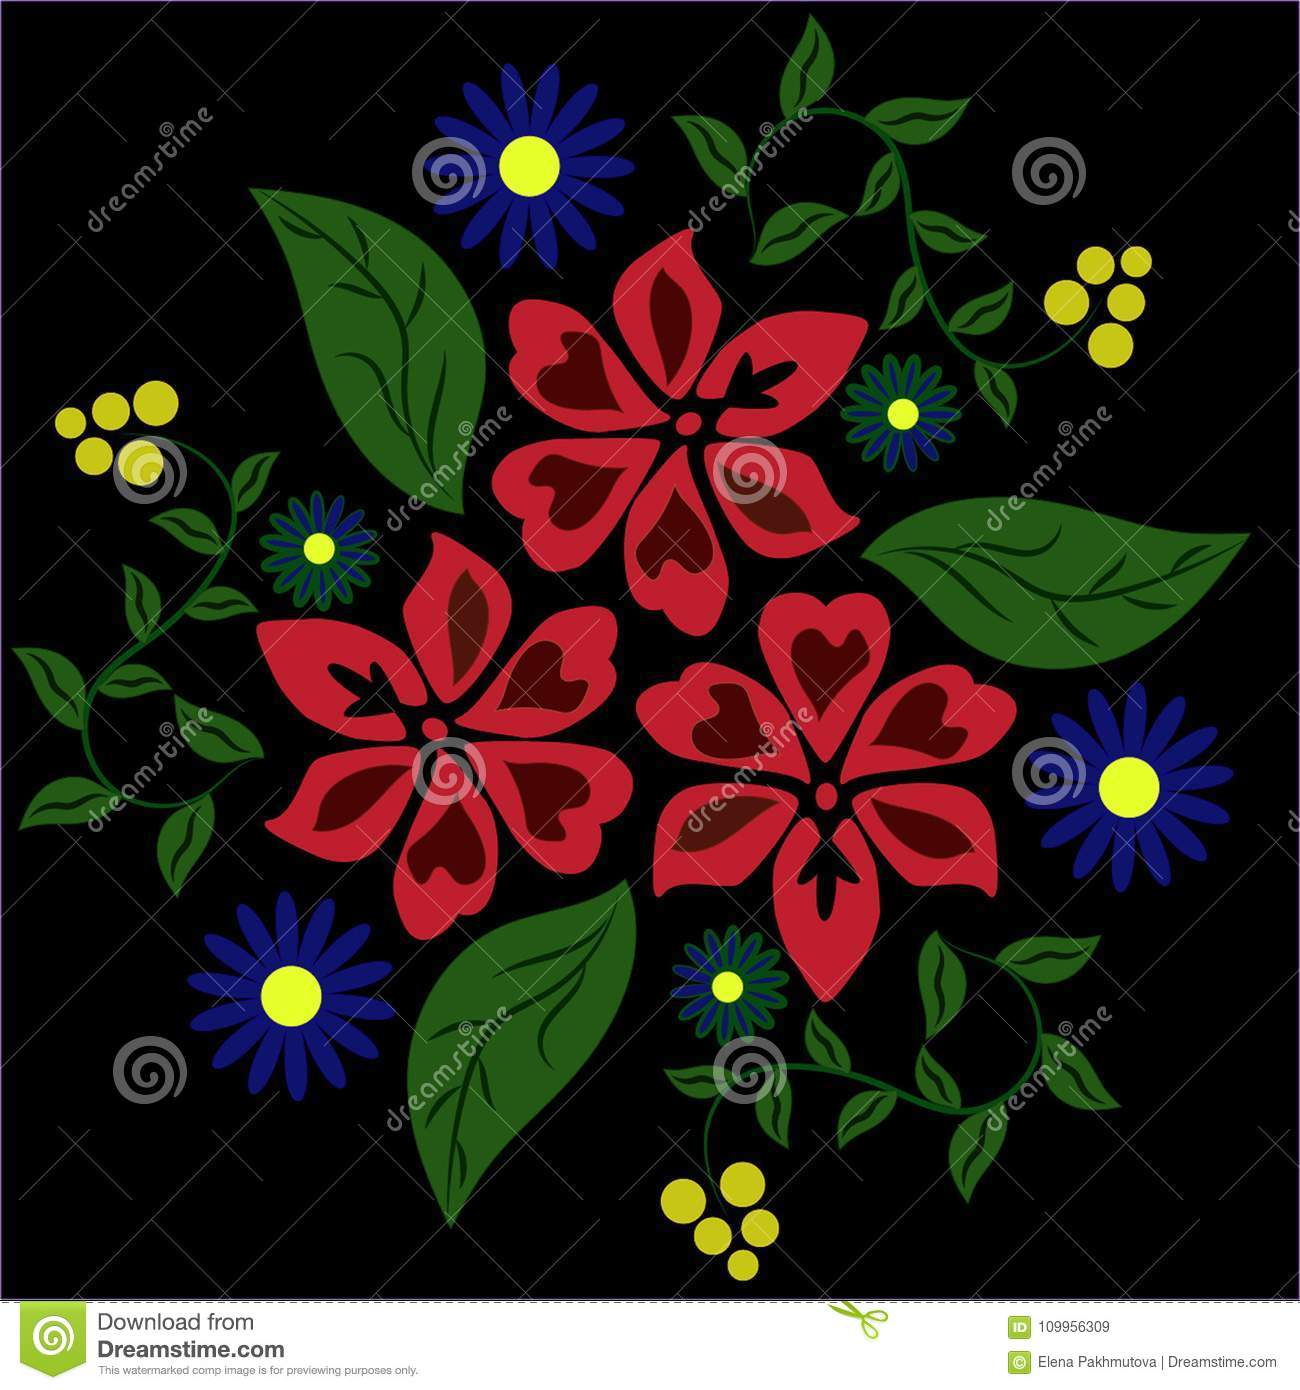 Flower Pattern Floral Flowers Illustration Abstract Seamless Nature